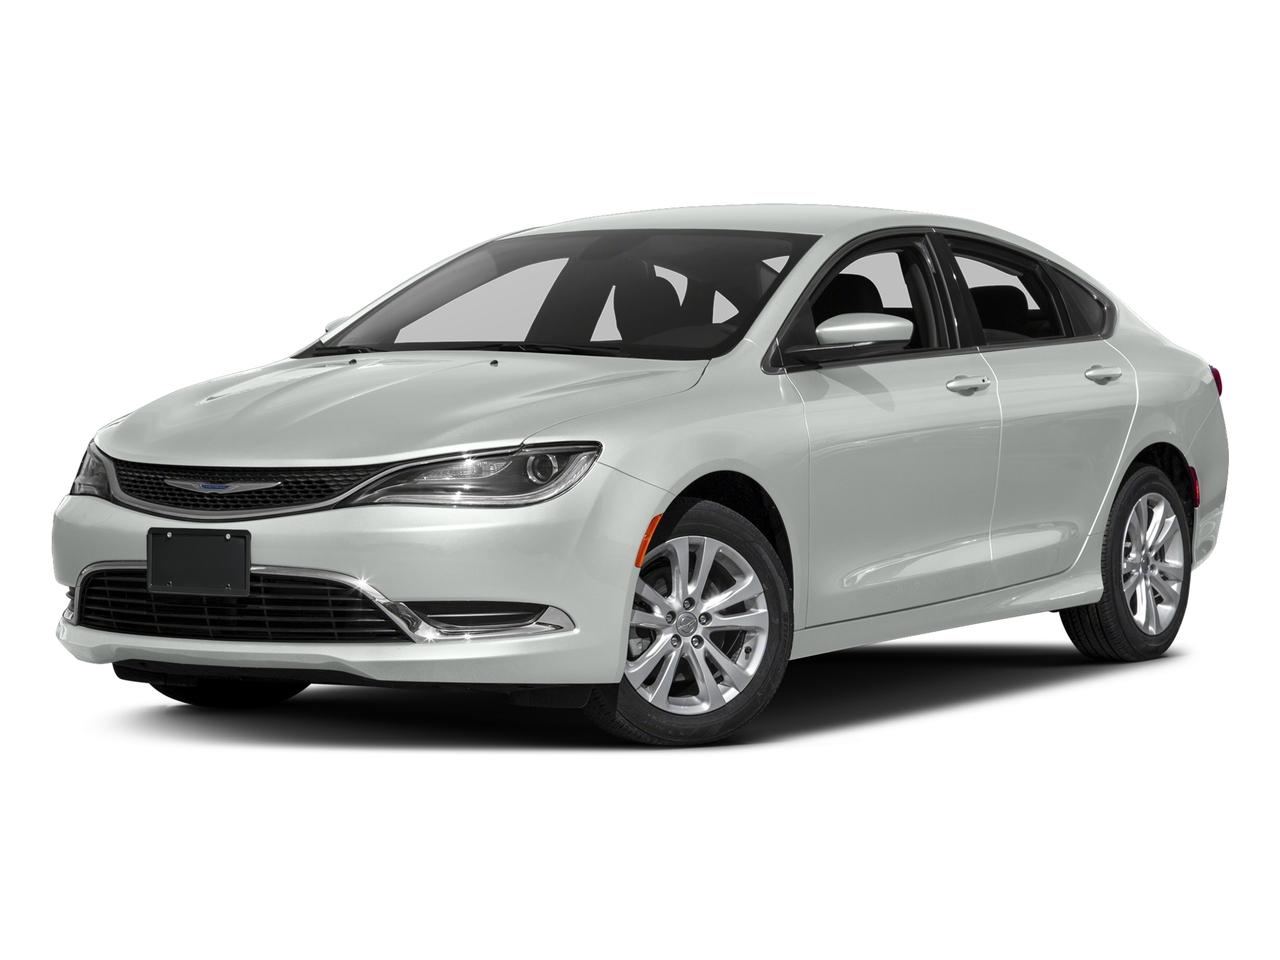 2016 Chrysler 200 Vehicle Photo in Ellwood City, PA 16117